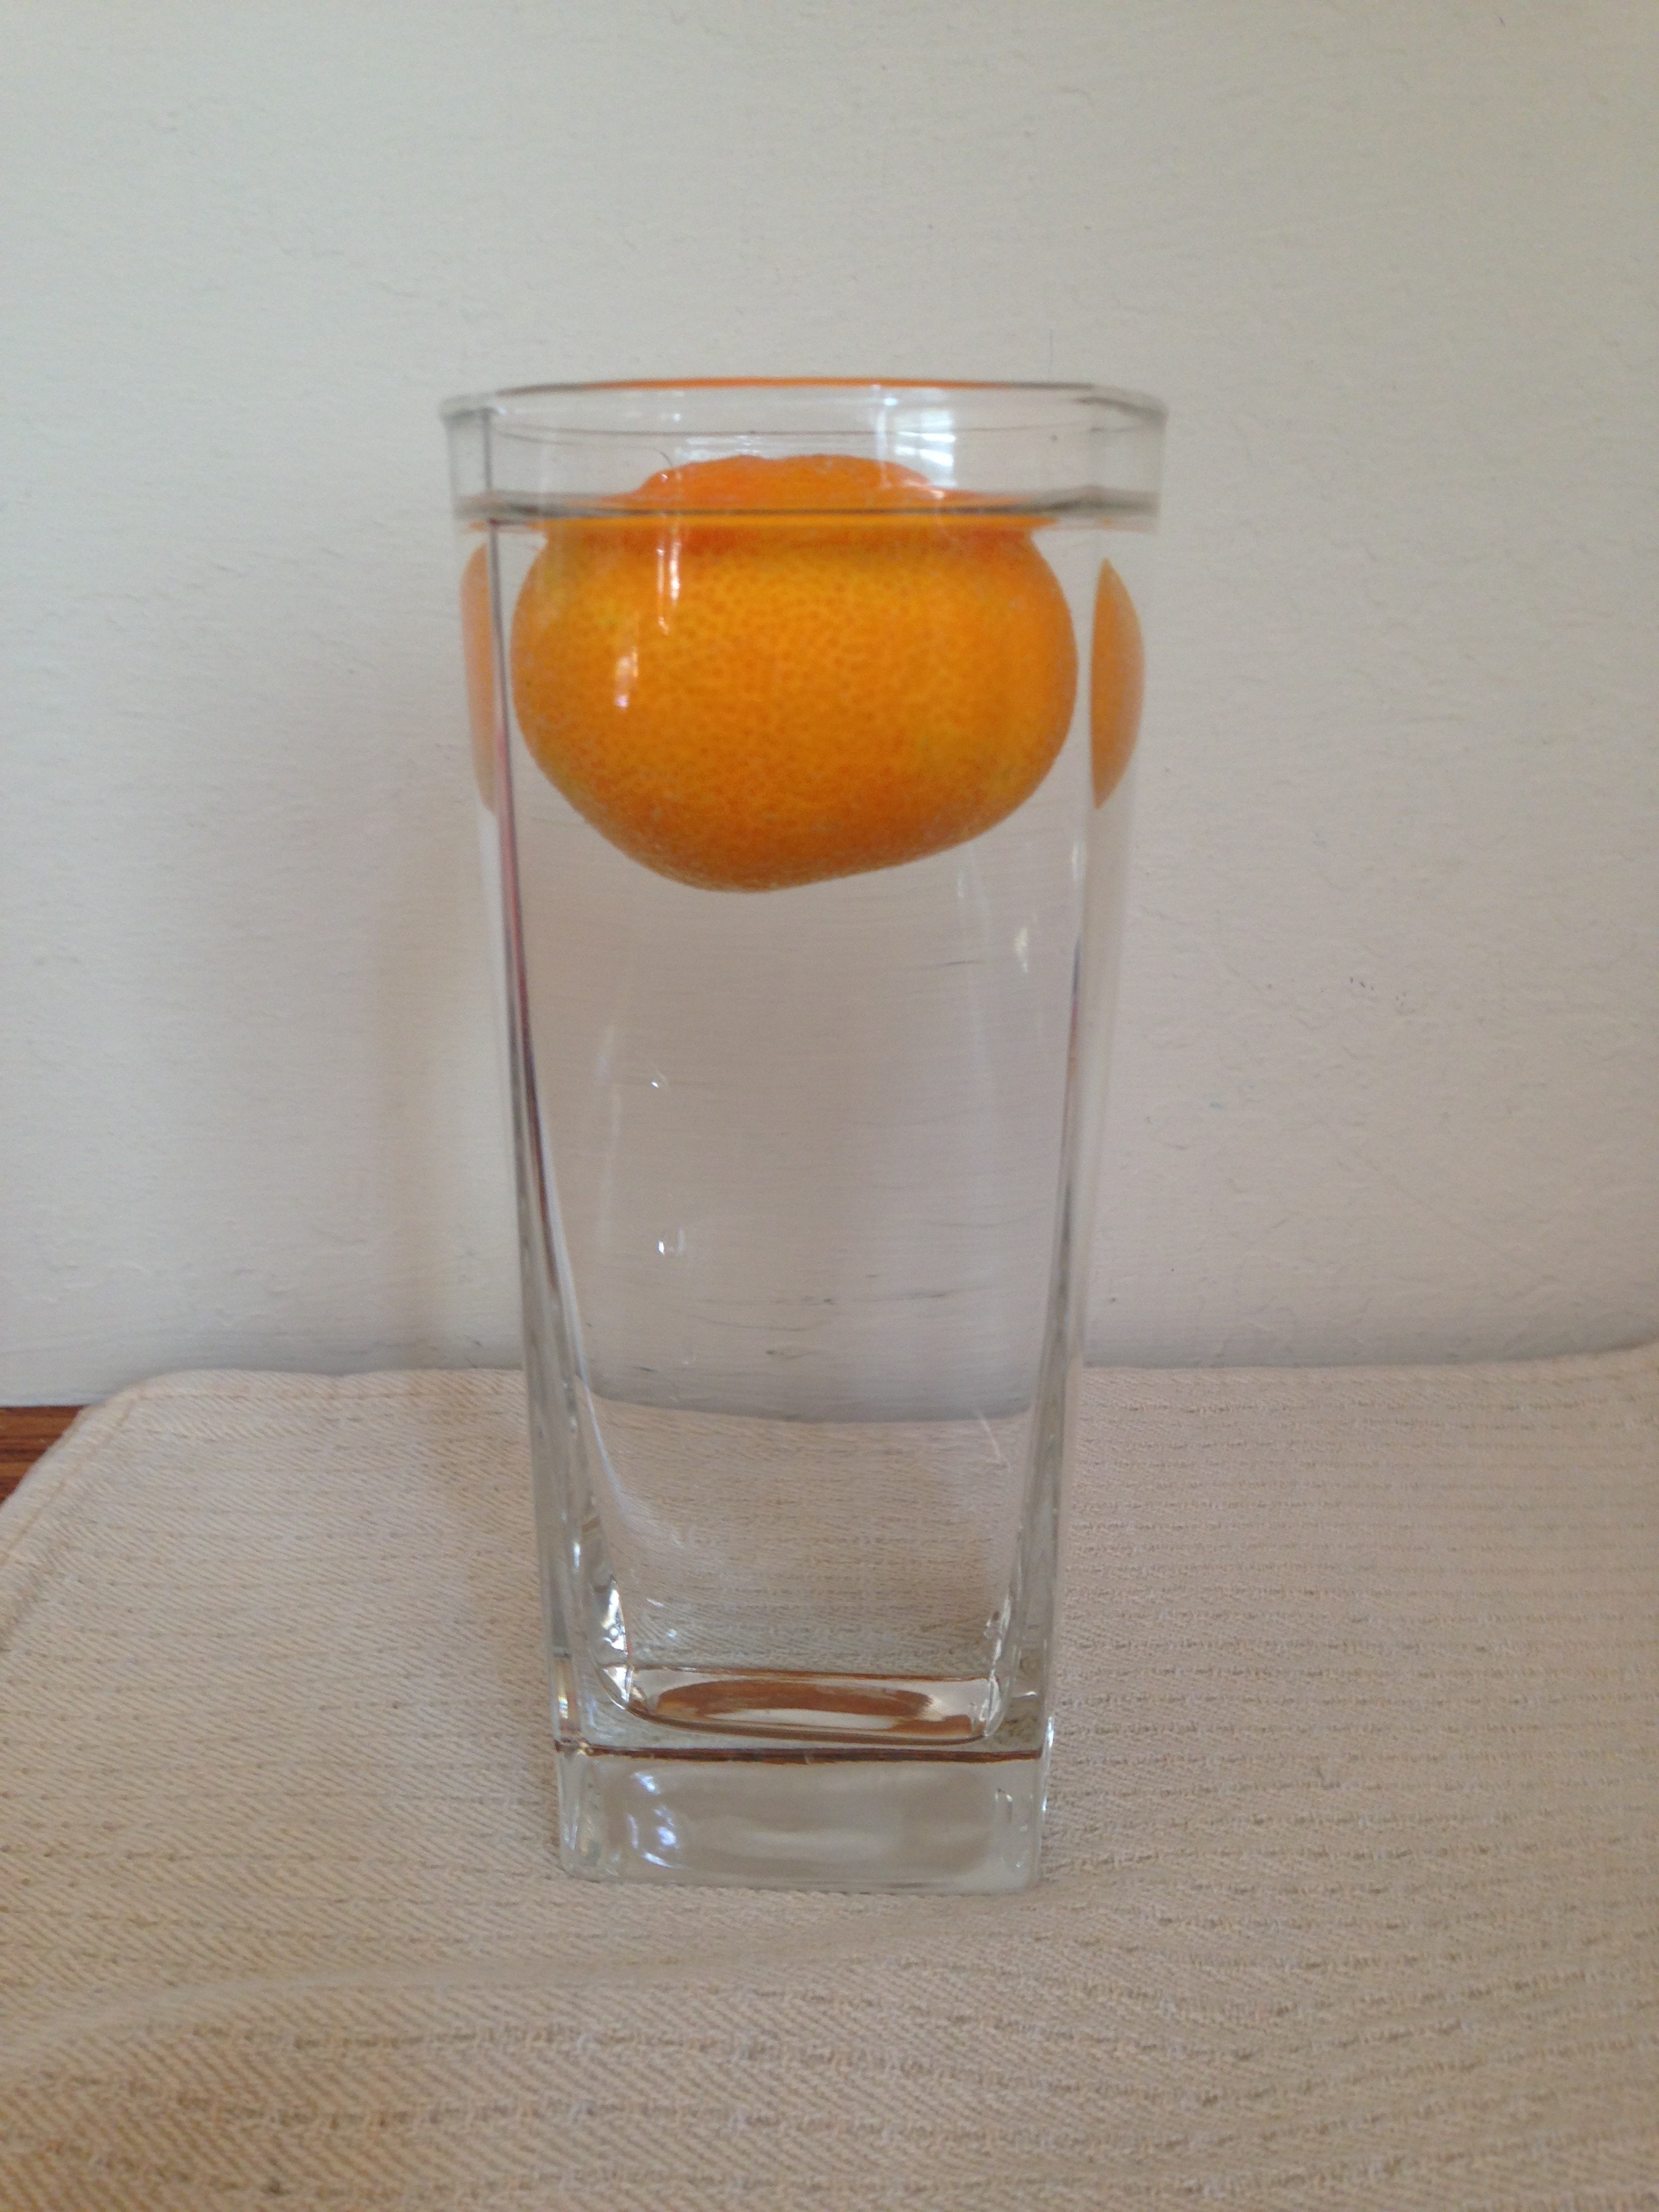 Peel The Orange. Now Predict What Will Happen When You Place The Unpeeled  Orange Into The Water.